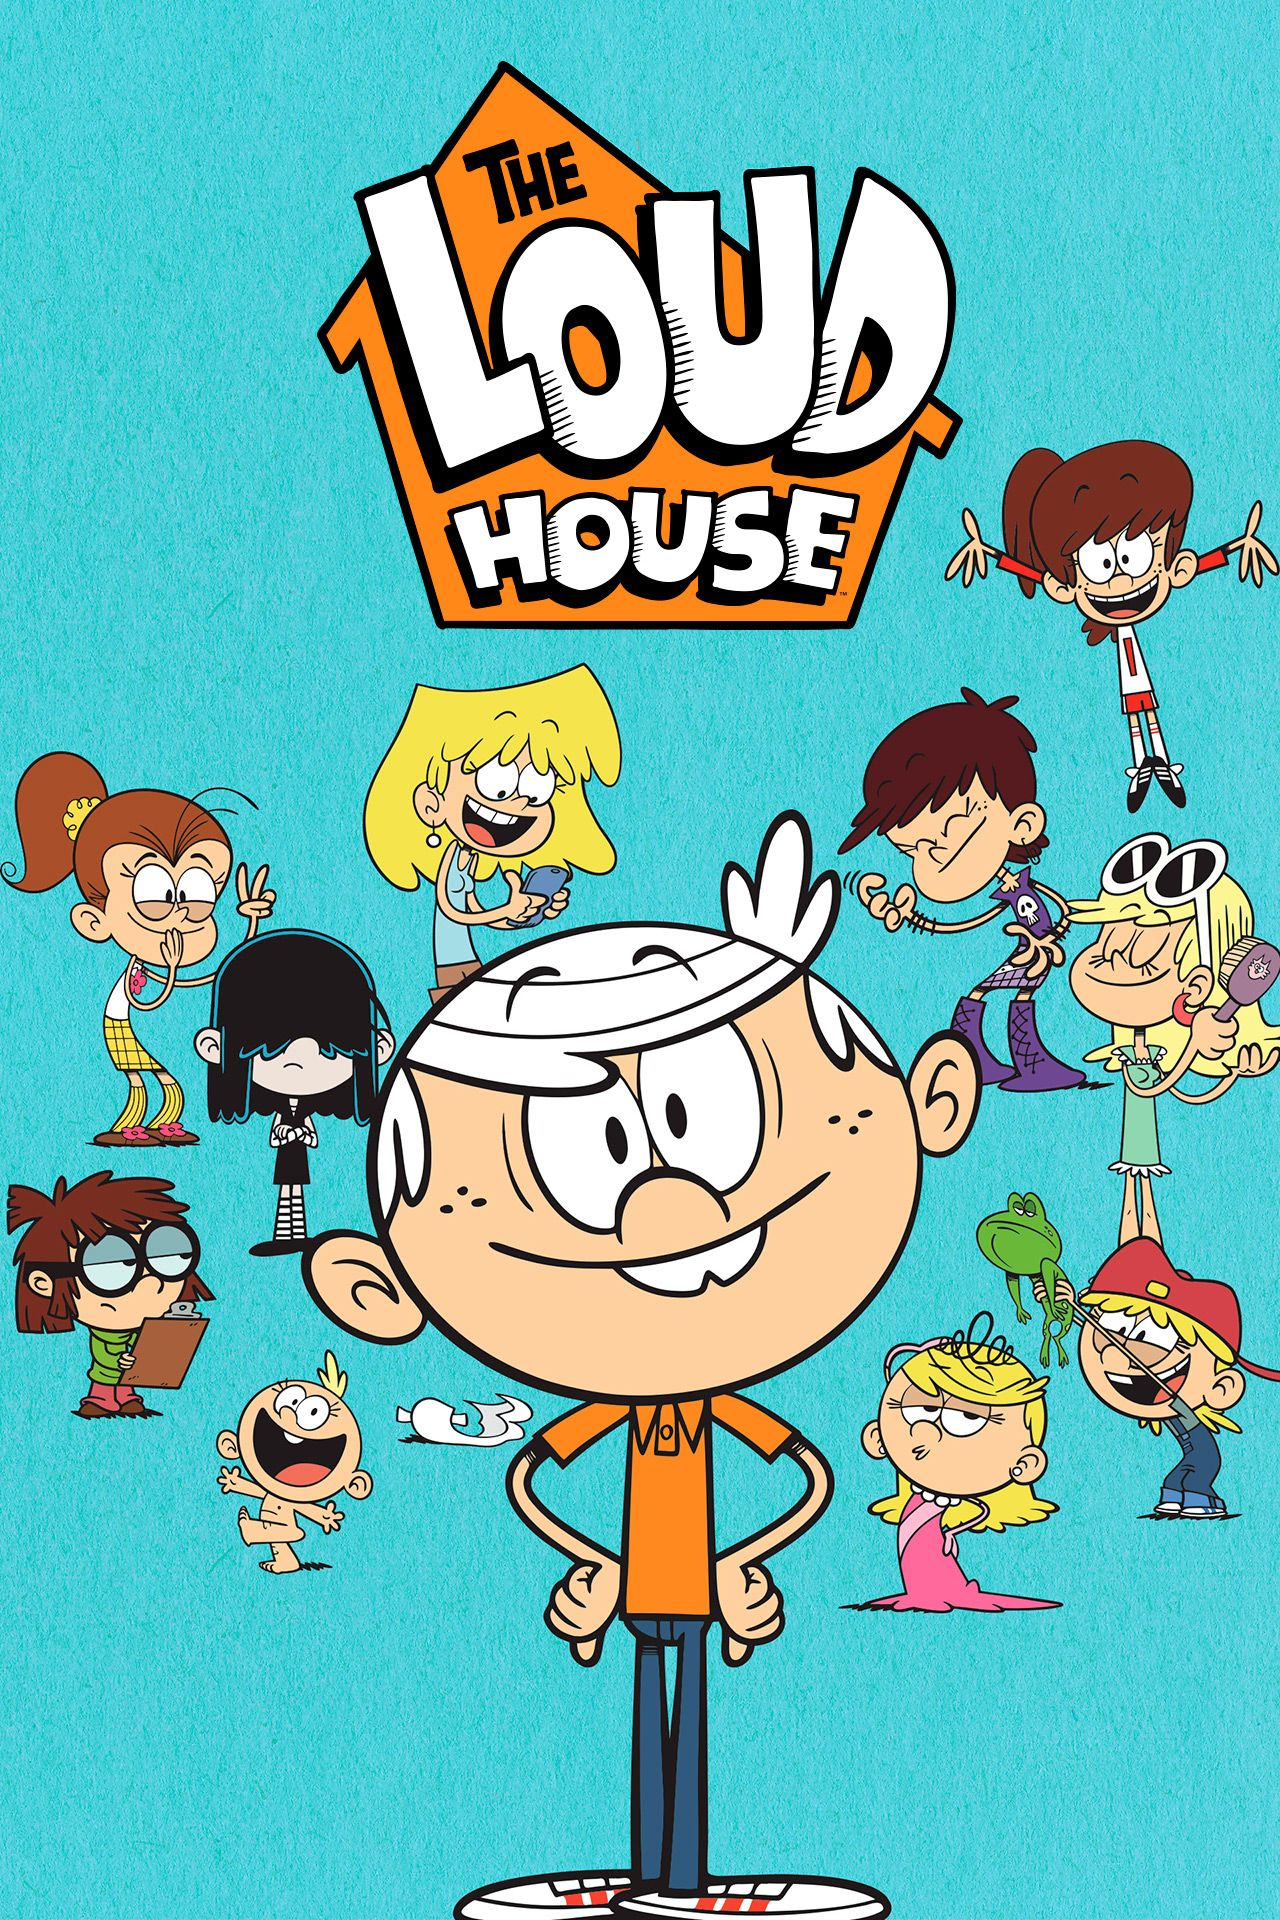 Loud House Games : house, games, House, Official, Series, Nickelodeon